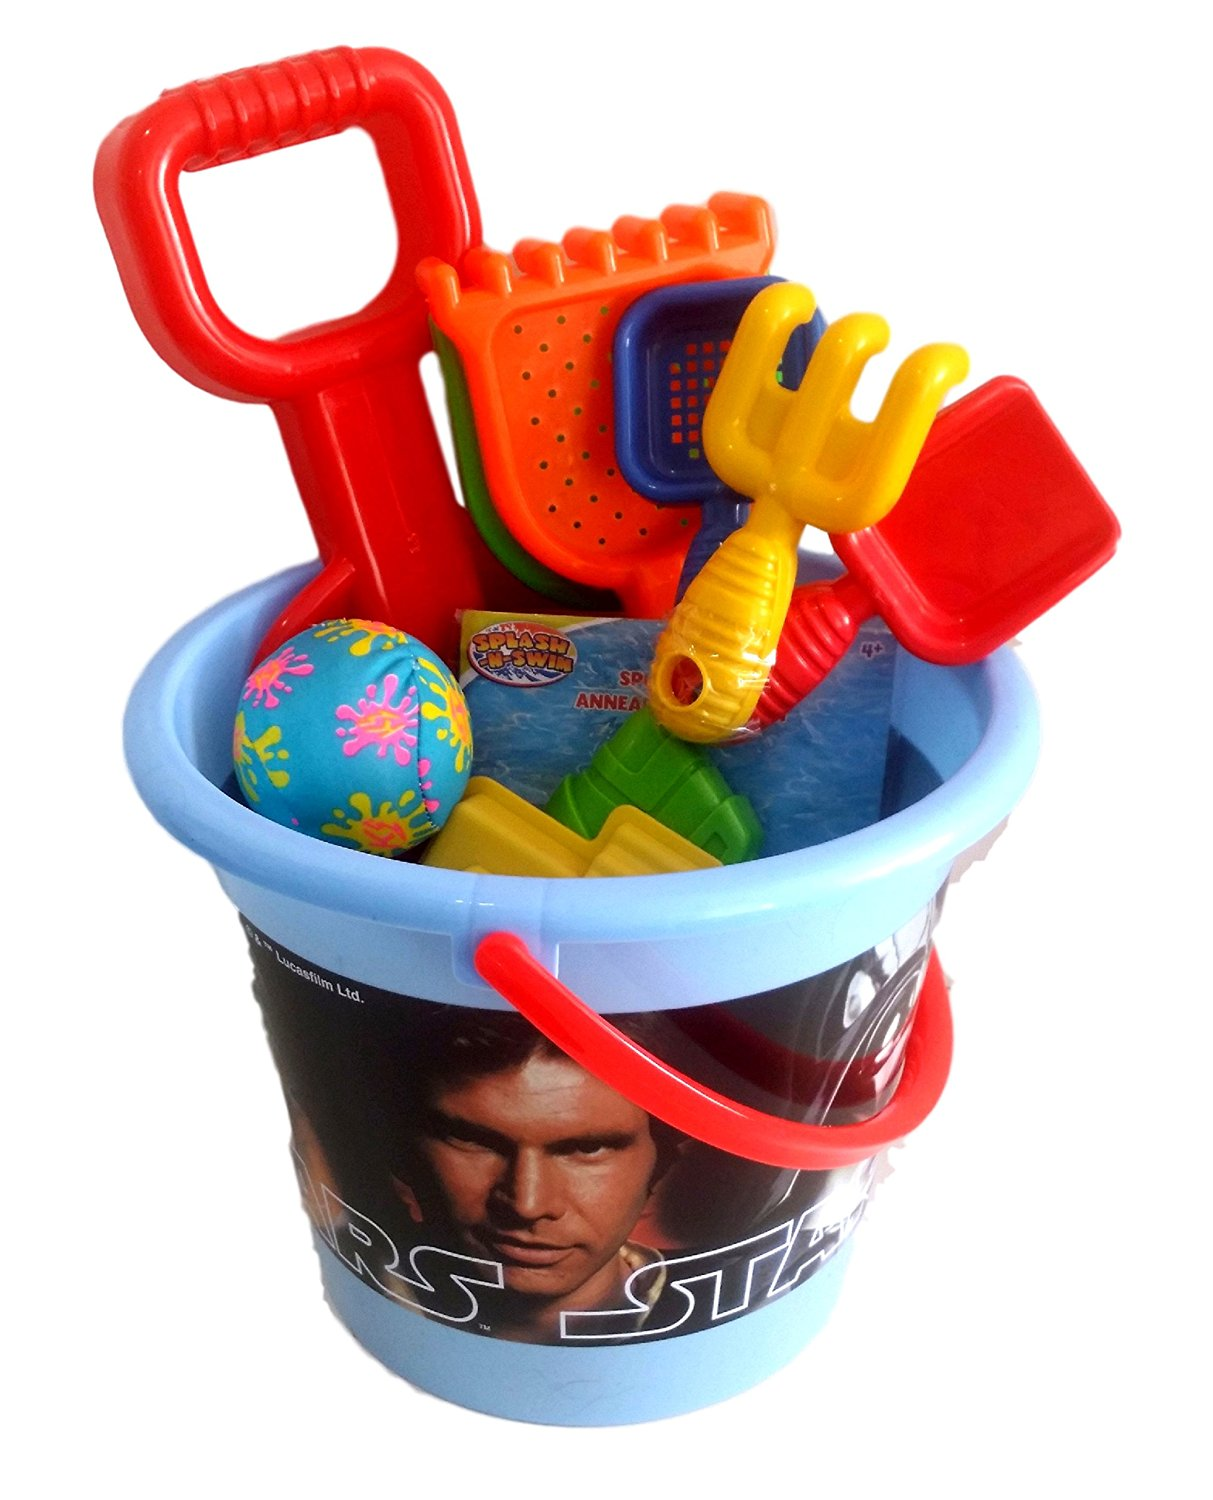 Star Wars Sand Bucket.,Jumbo Star Wars Sand Pail filled with Sand Toys, Pool Toys, Beach Toys 11 Pieces!